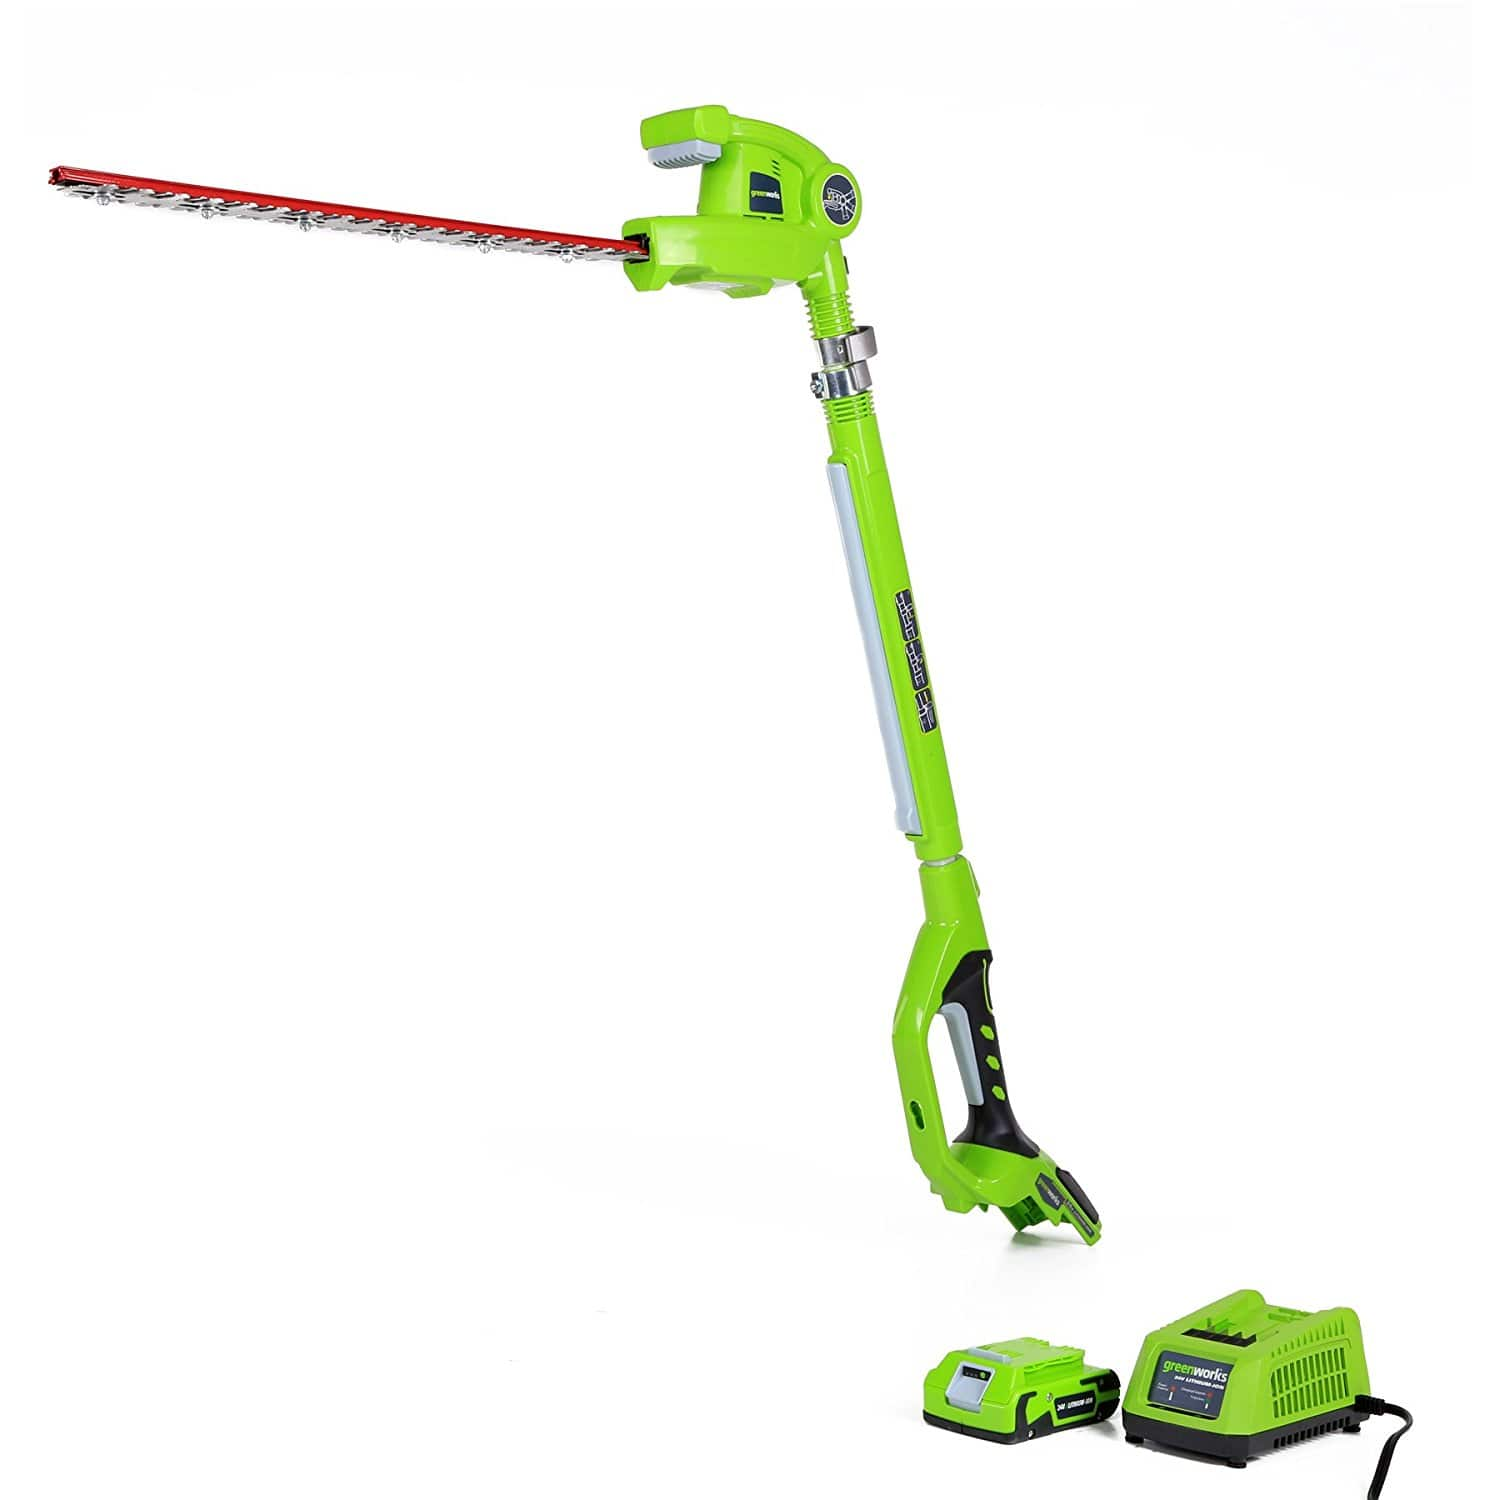 GreenWorks 22242 24V 20-Inch Cordless Pole Hedge Trimmer, 2Ah Battery and Charger Included FS $56.99